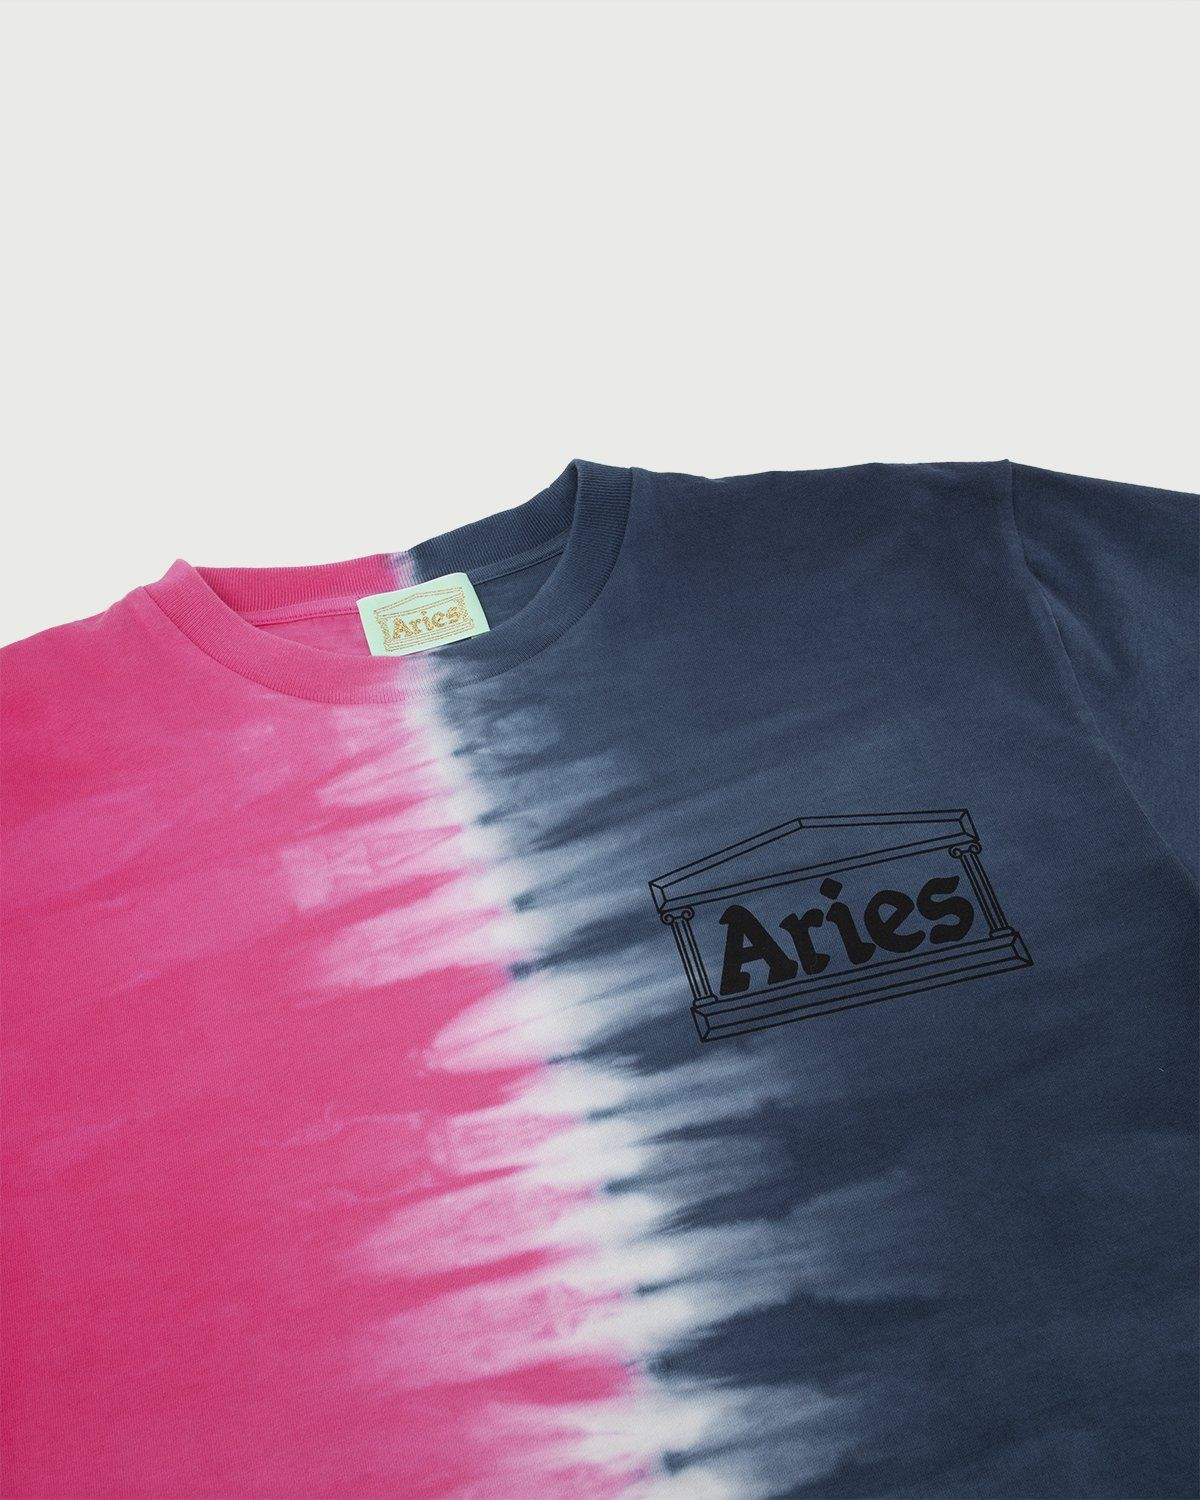 Aries - Tie Dye Half and Half Tee Blue/Fuchsia - Image 2